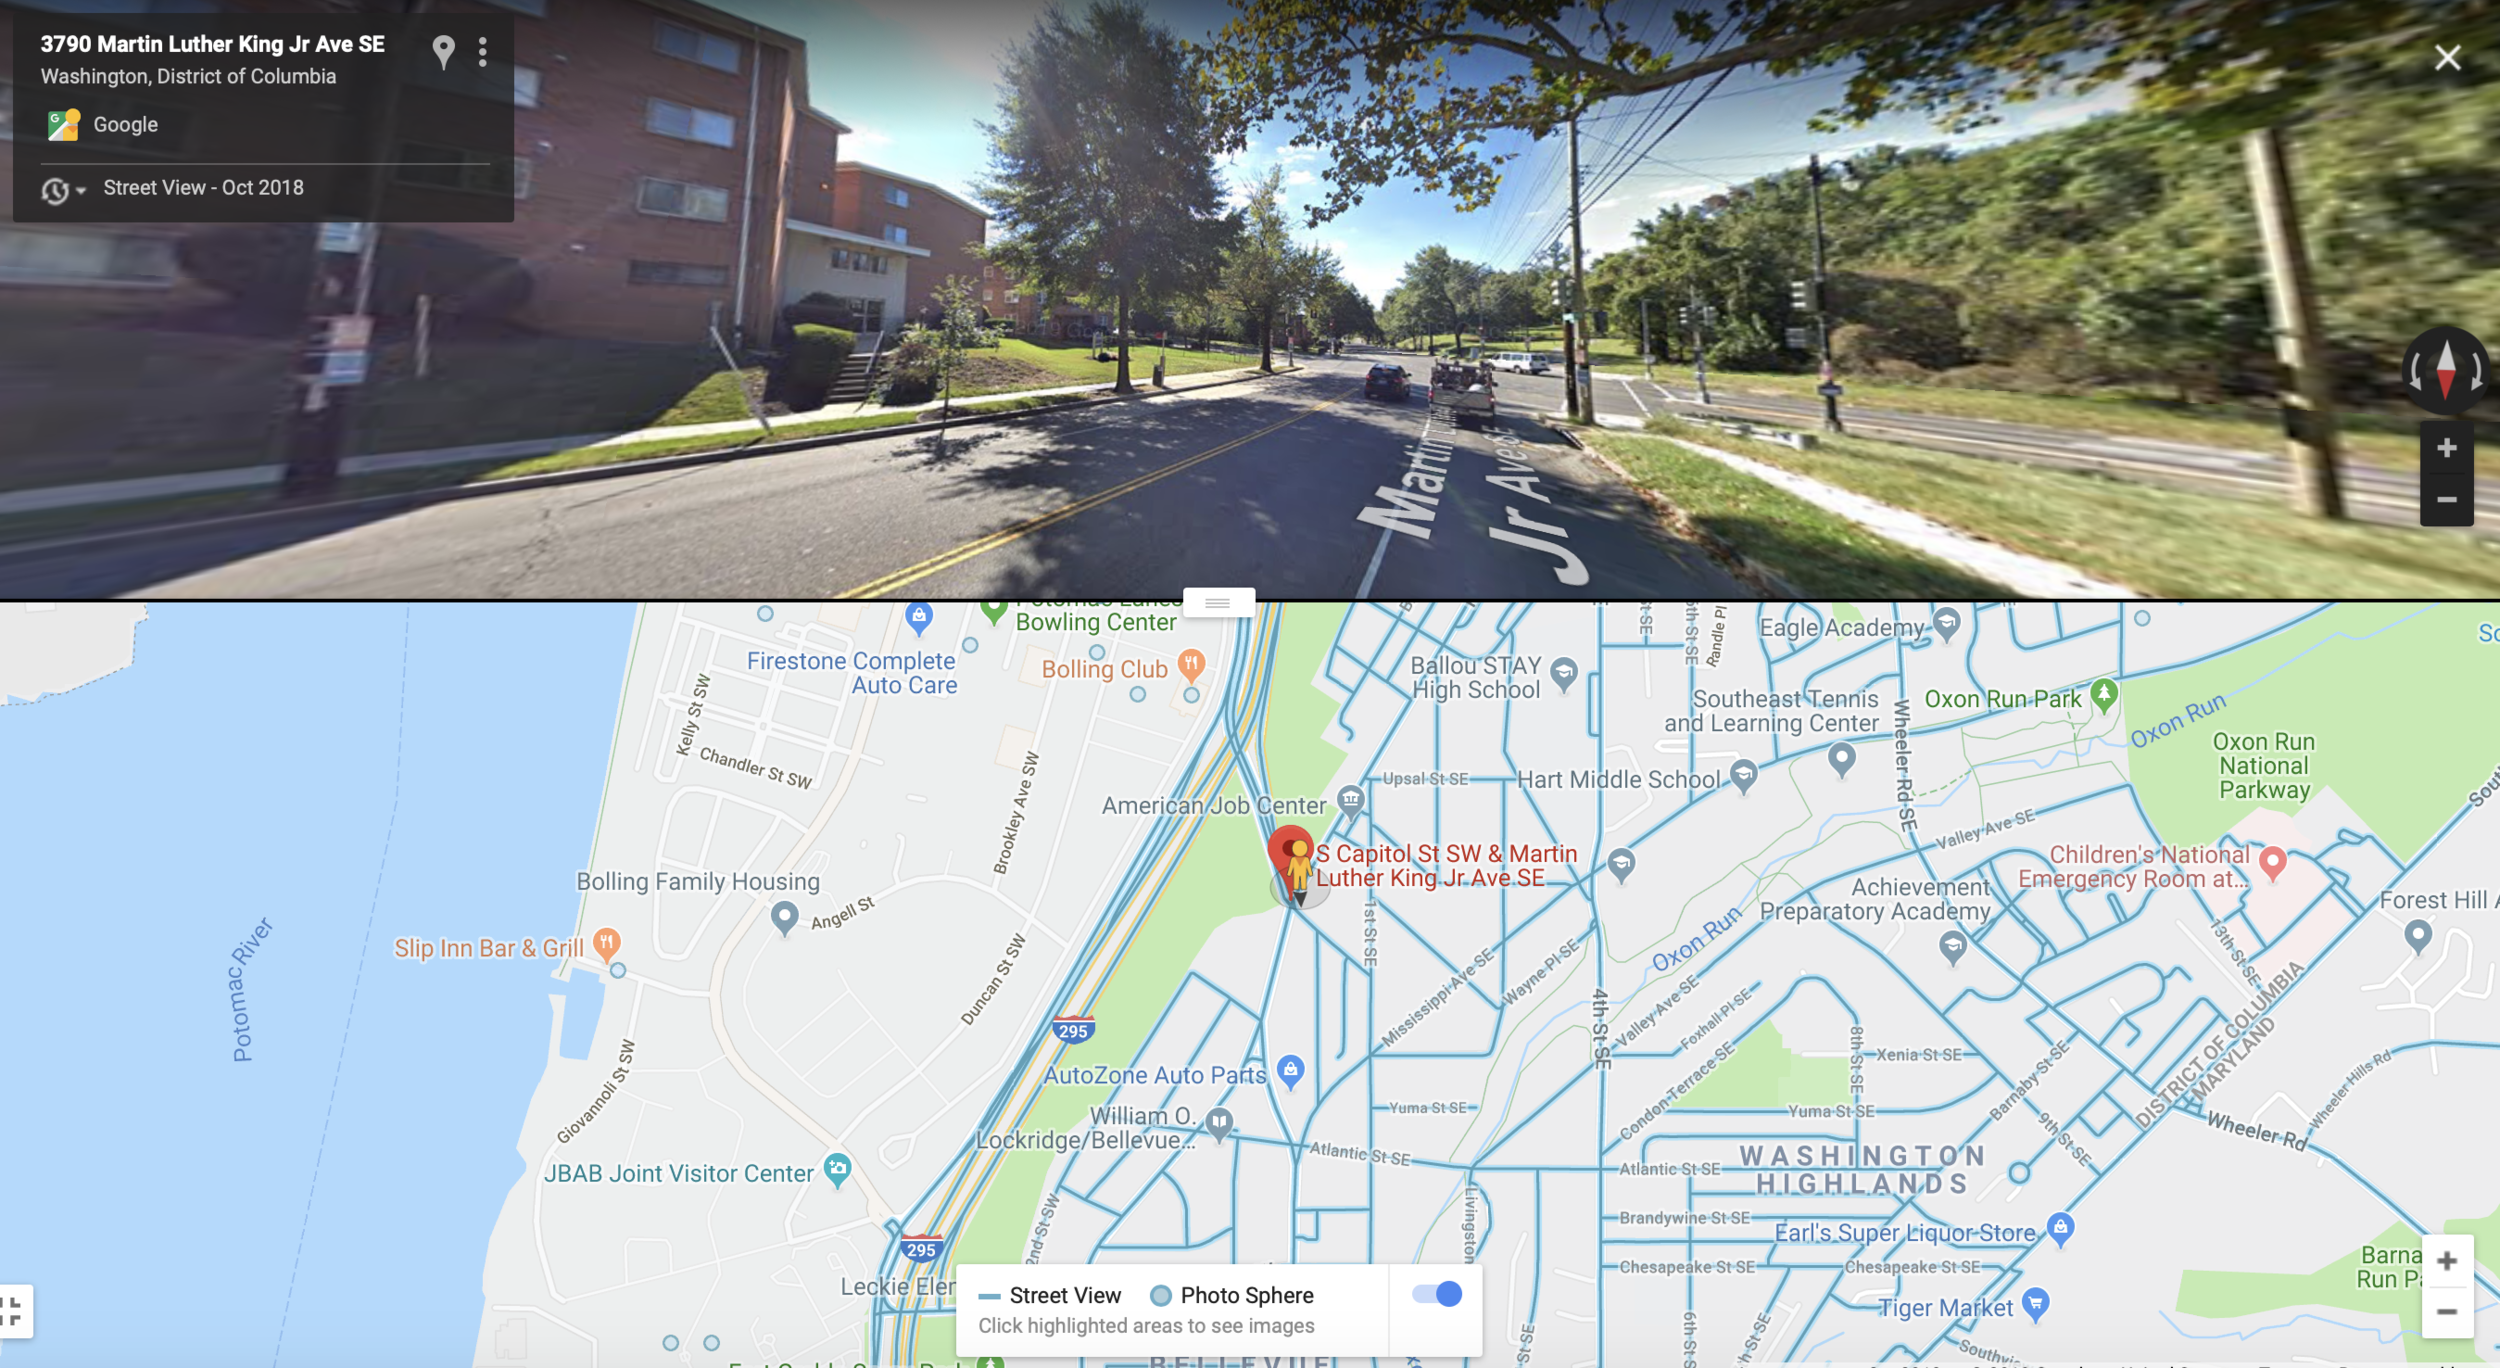 June 22 | Traffic Safety Site Visit for South Capitol Street SW